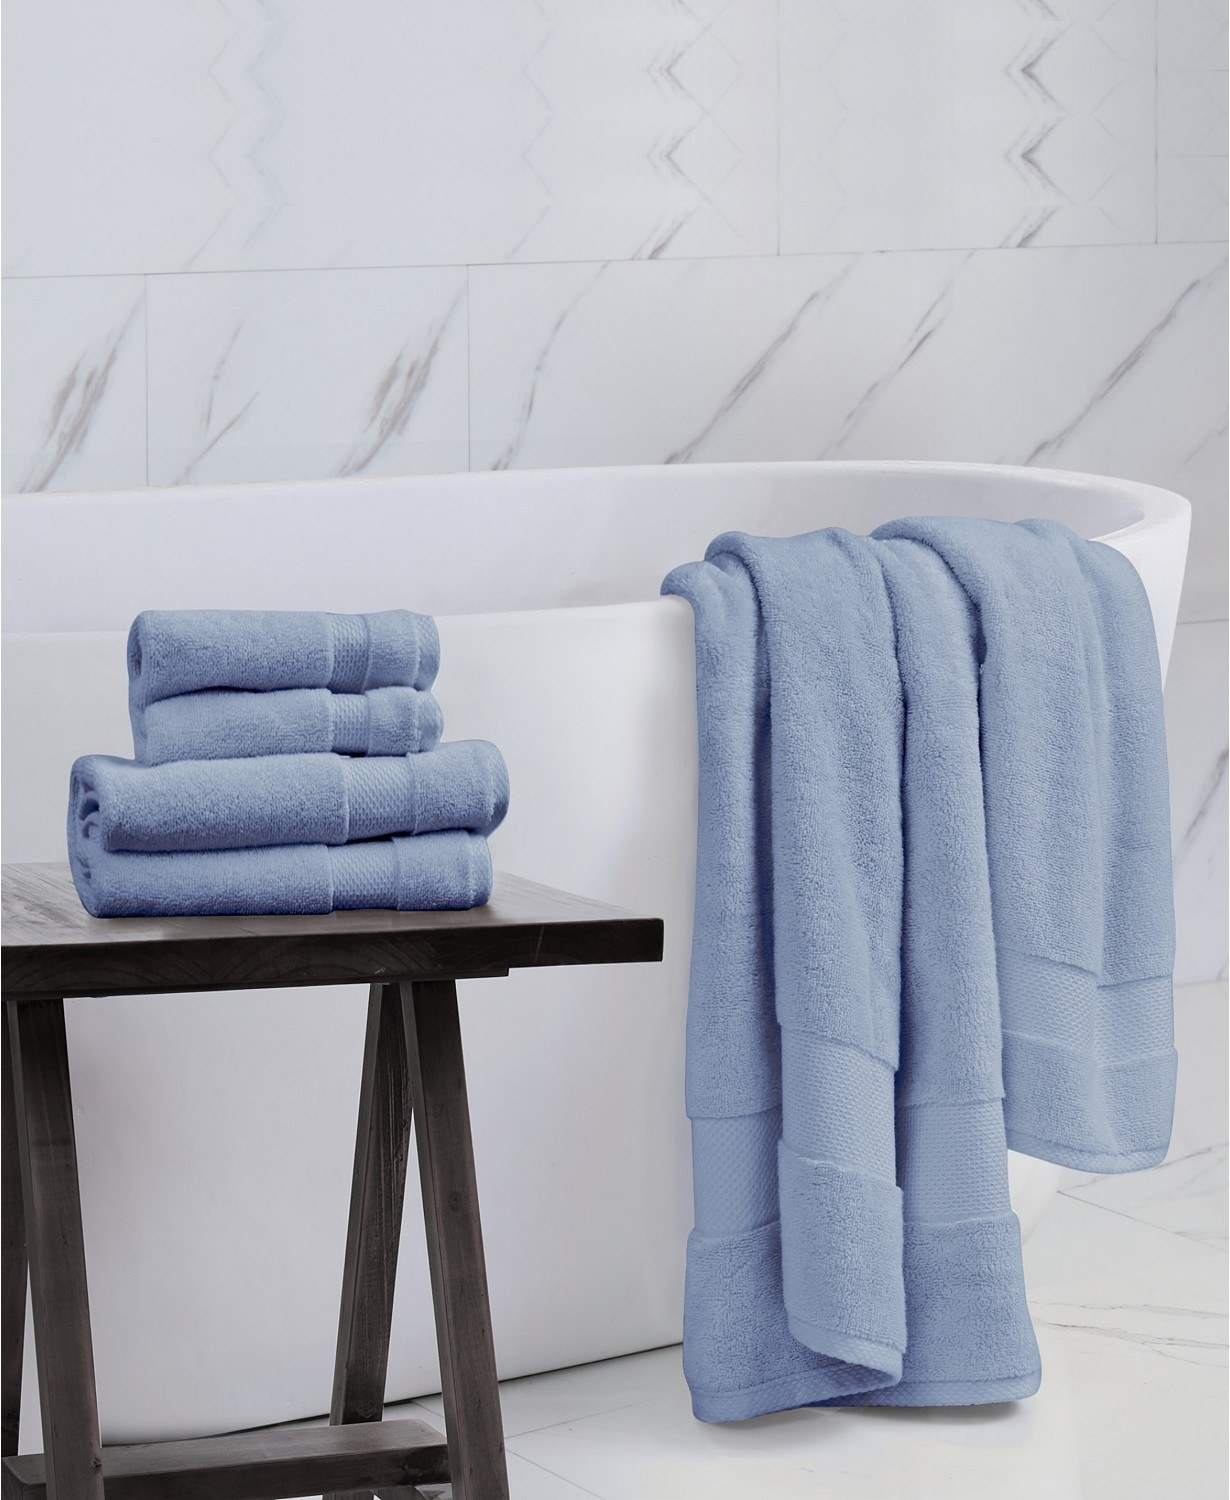 the blue charisma american heritage towel set in a bathroom